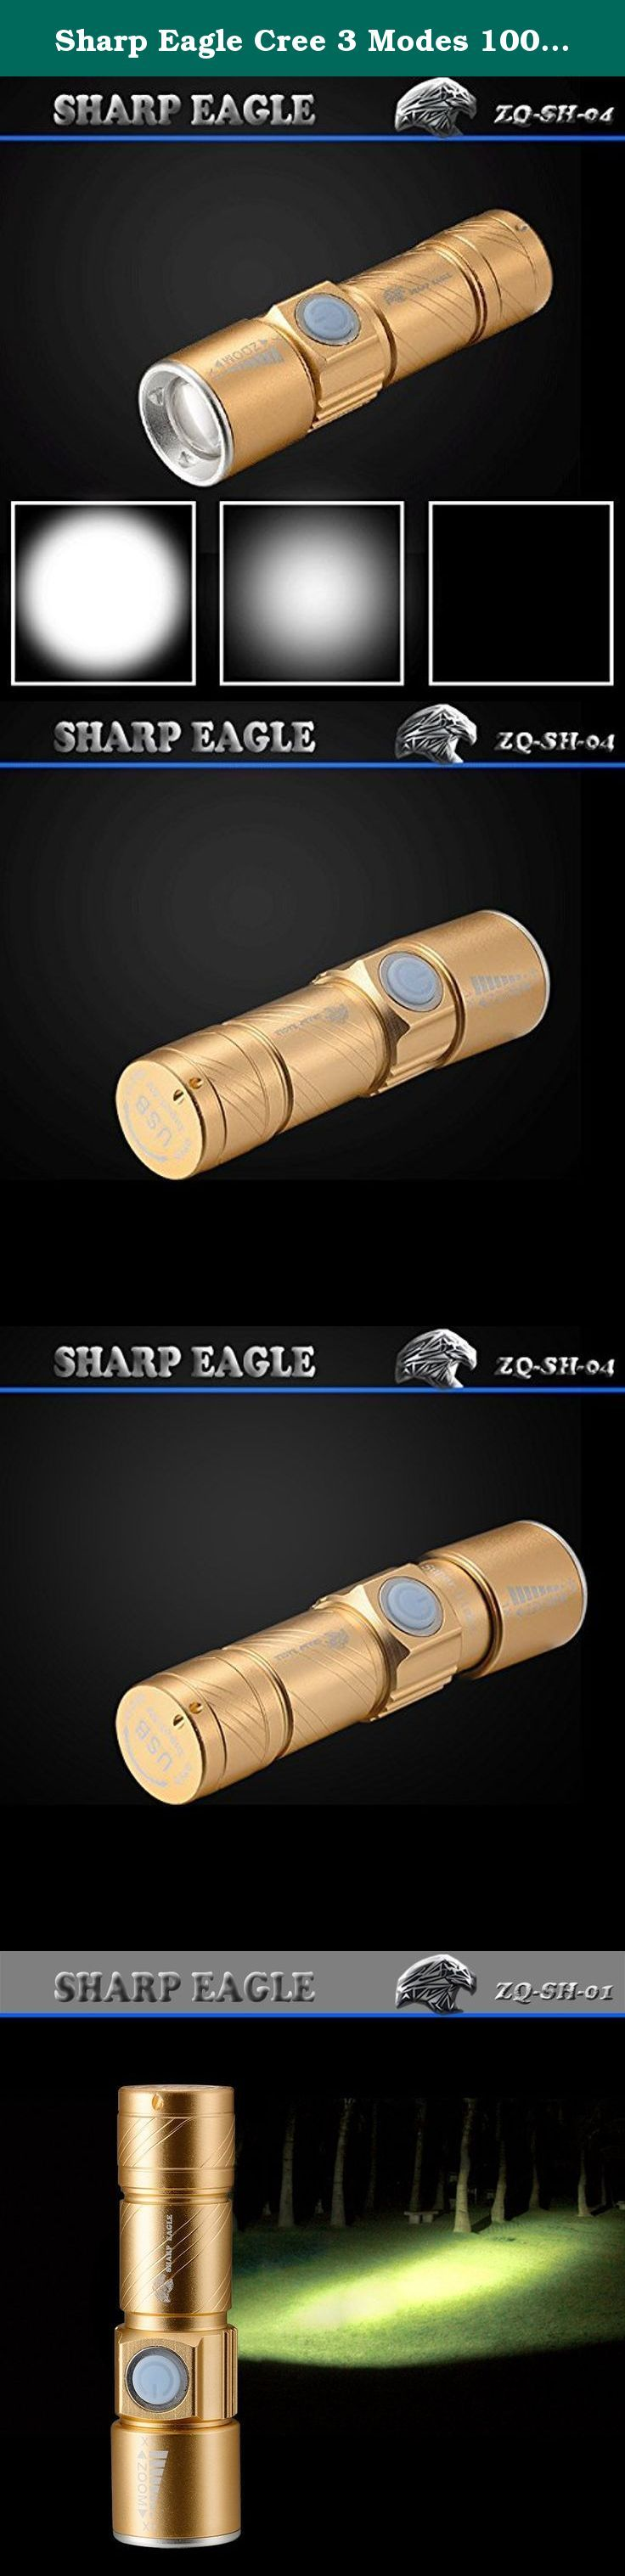 Sharp Eagle Cree 3 Modes 1000lm Rechargeable LED Flashlight Gold- Neutral White Light. Model: SHARP EAGLE ZQ-SH-04 Color: Black Material: Aluminum Lamp beads: CREE XML-XPE Lamp beads: 1 Lumen: 600LM Gear mode: 3 (strong, weak, strobe) Battery Type: Built-in battery Run time: 2-4 hours Whether the focus: Be Waterproof grade: IPX5 (Anti-rain, spill-resistant water) Product Weight: 70g Package weight: 80g Product Size: 9.5 * 2.5 * 2CM Package Size: 11 * 4 * 4CM products include: 1…